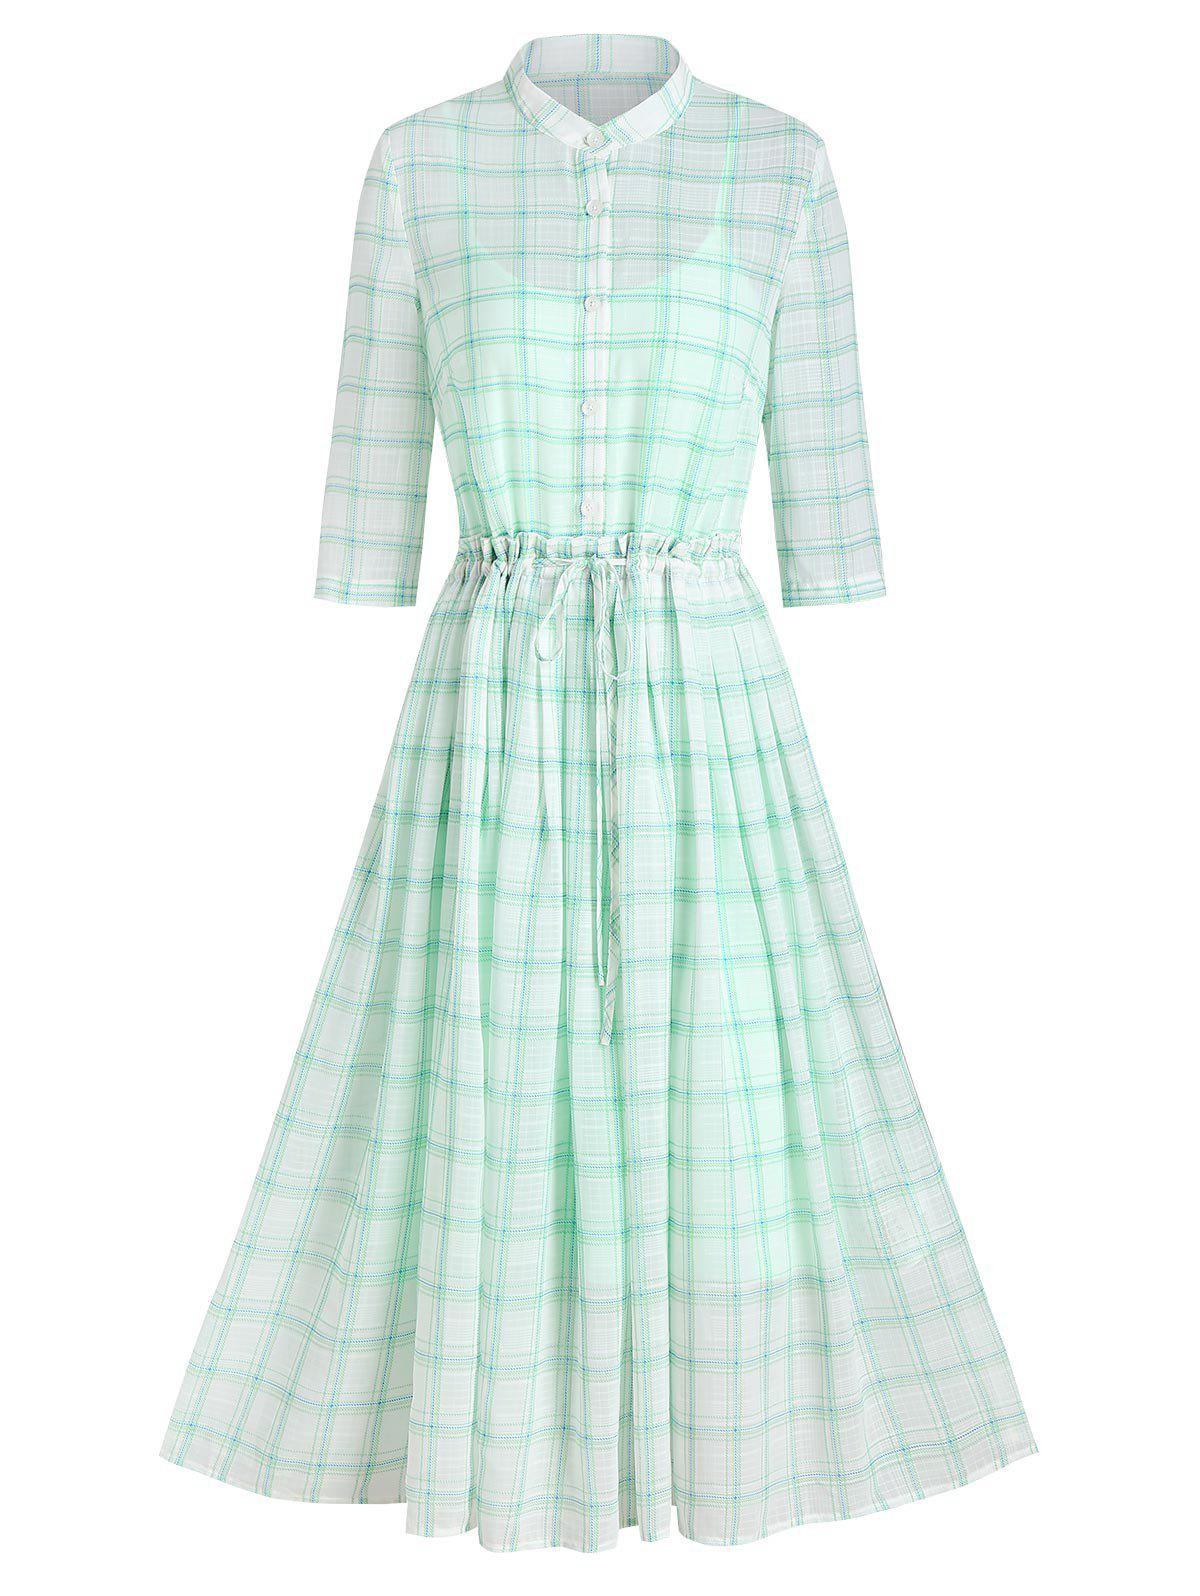 Plaid Print Toggle Drawstring Dress and Slip Dress - ALGAE GREEN M